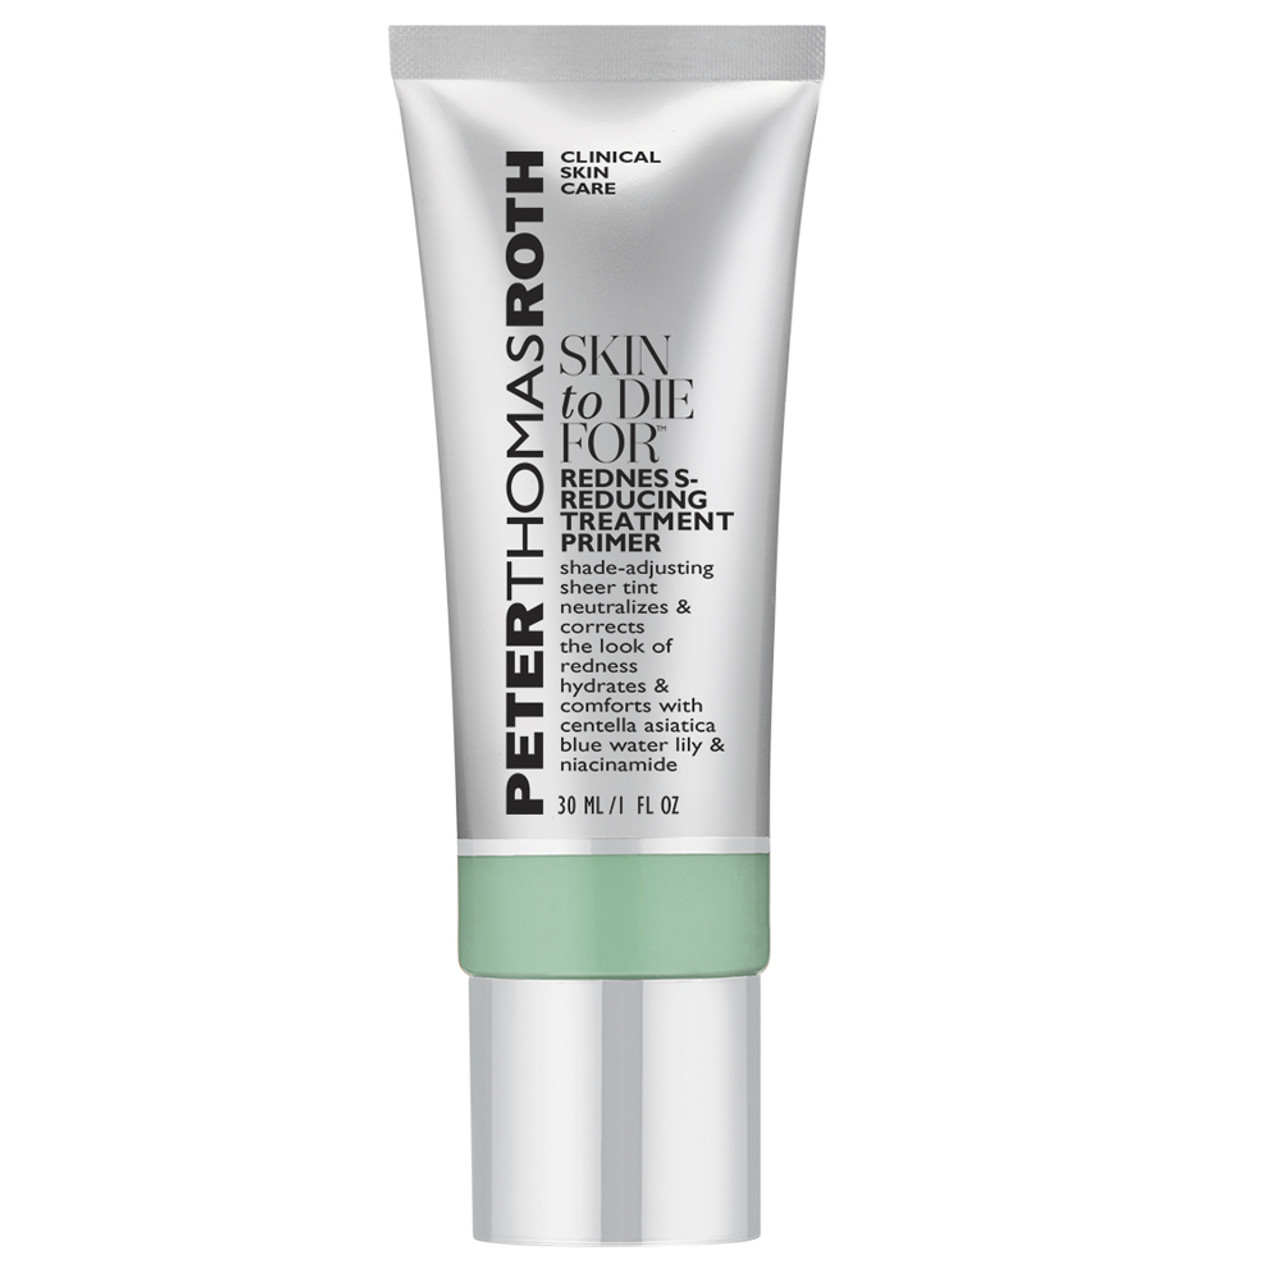 Peter Thomas Roth Skin To Die For Redness-Reducing Treatment Primer